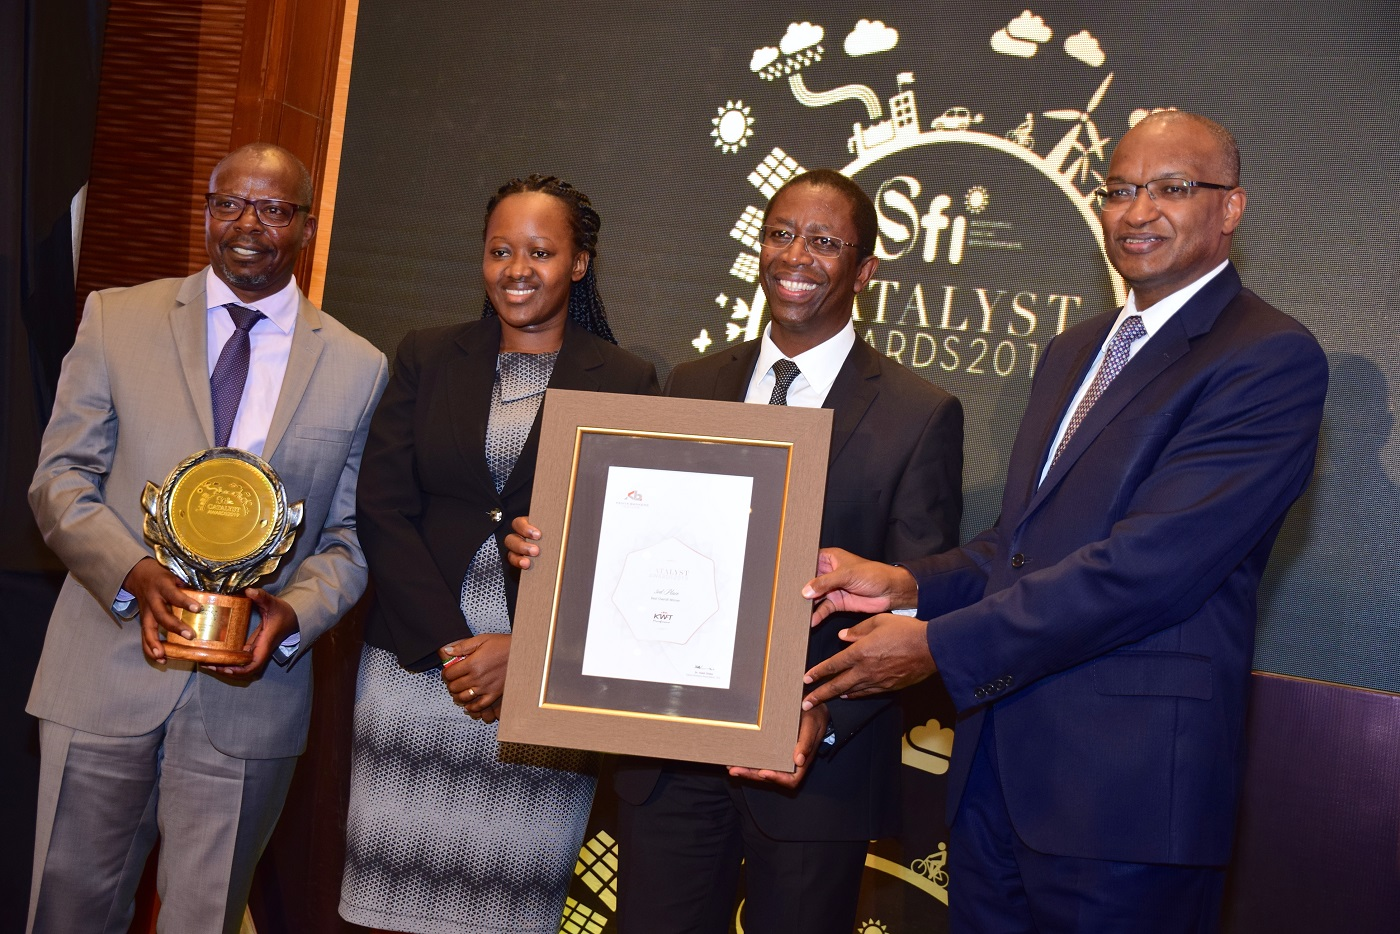 Kenya Bankers Association Sustainable Finance Initiative (SFI) Catalyst Awards www.businesstoday.co.ke